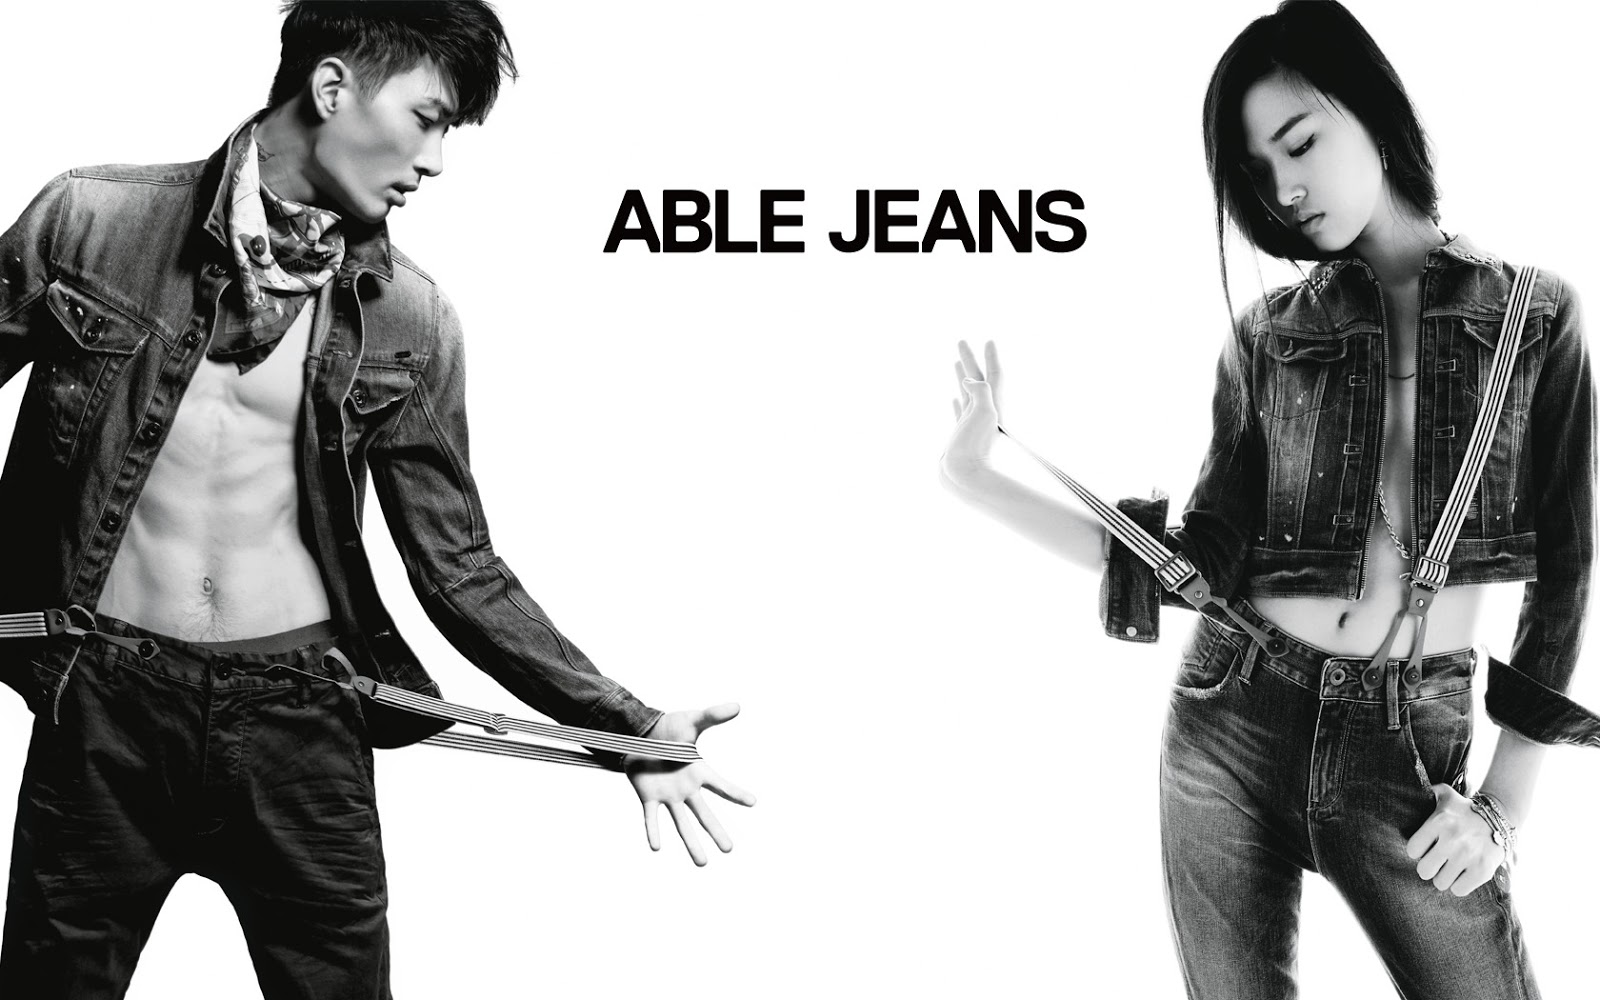 Able Jeans FW 2013 | Rayan Michael Kelly | Able Jeans | Numerique Retouch Photo Retouching Studio